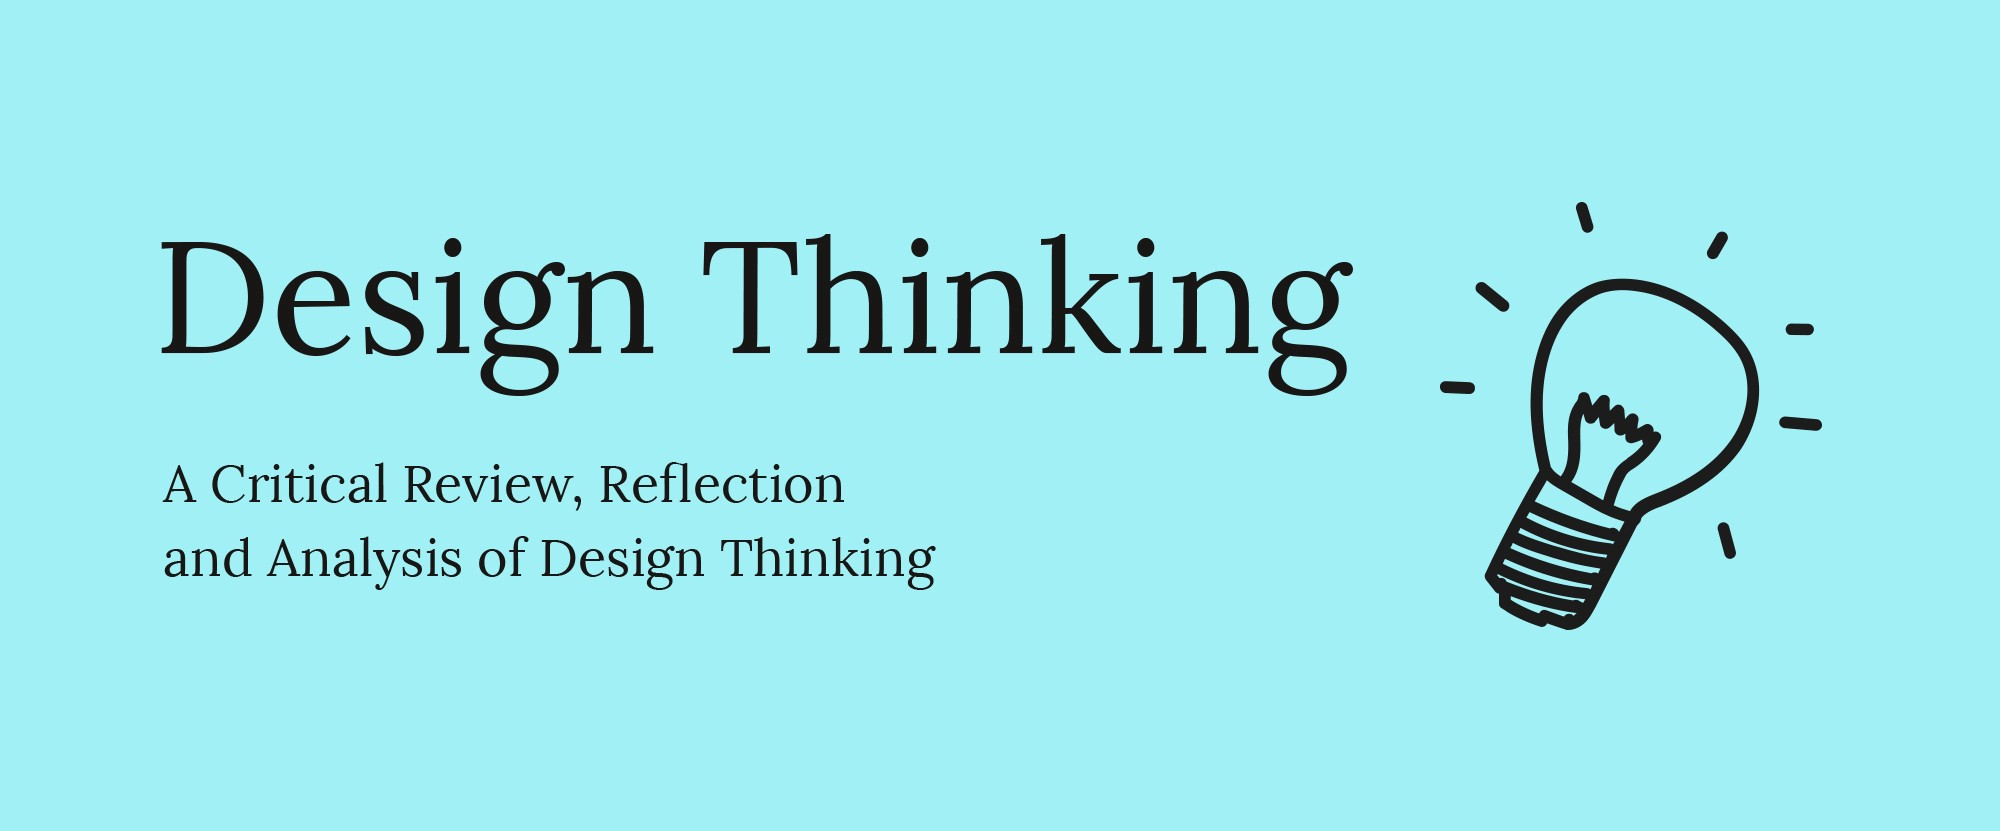 Design Thinking A Critical Review Reflection And By Sian Huxtable Lee Prototypr